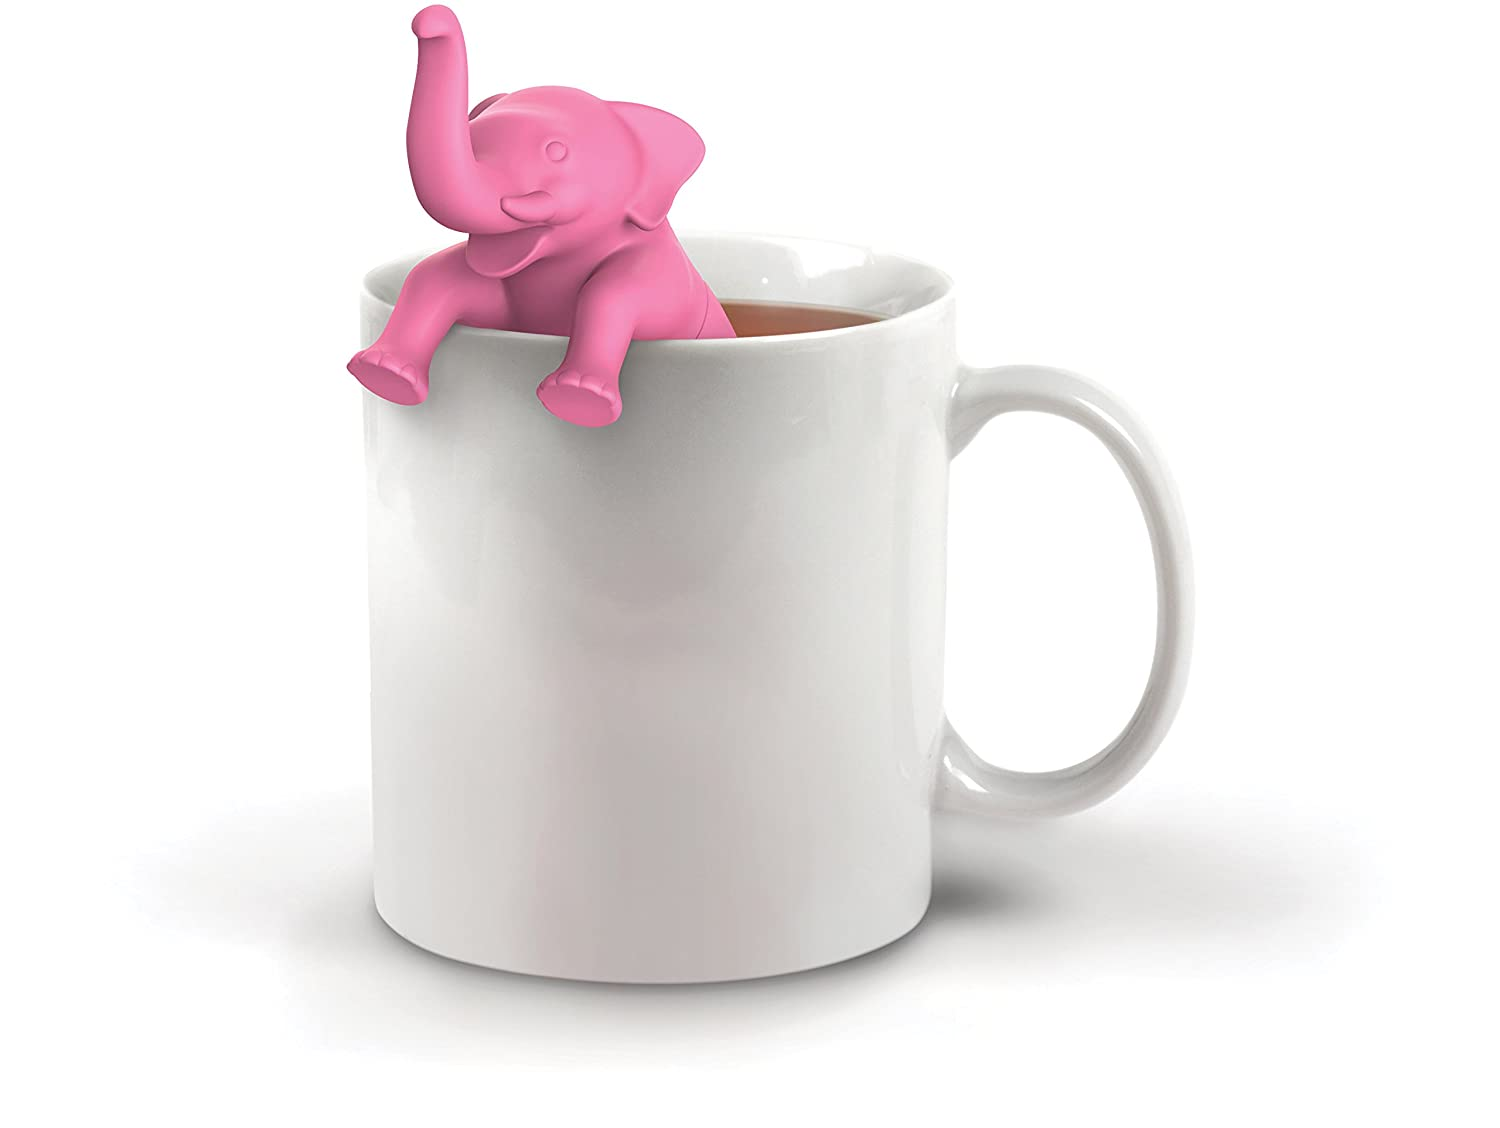 aae776501 Amazon.com  Fred BIG BREW Elephant Silicone Tea Infuser  Kitchen   Dining